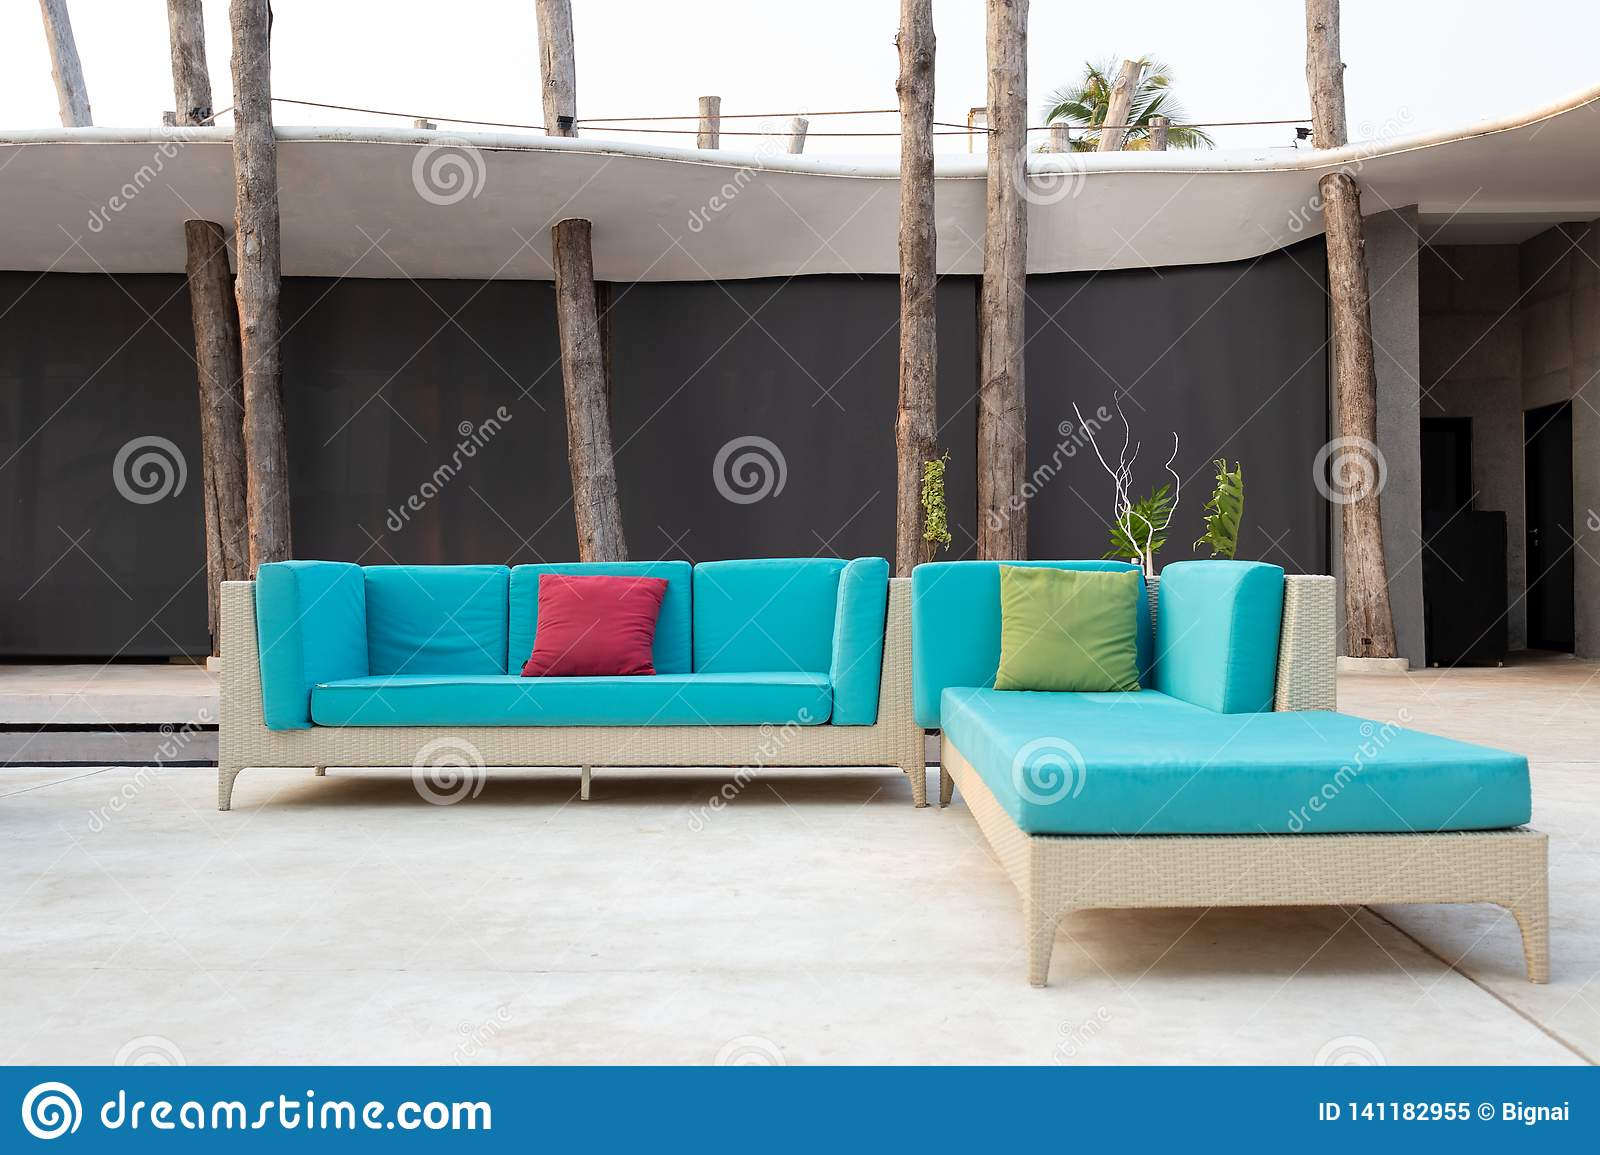 White Rattan Garden Furniture With Blue Cushion On Resort Terrace Stock Image Image Of Chair Landscape 141182955